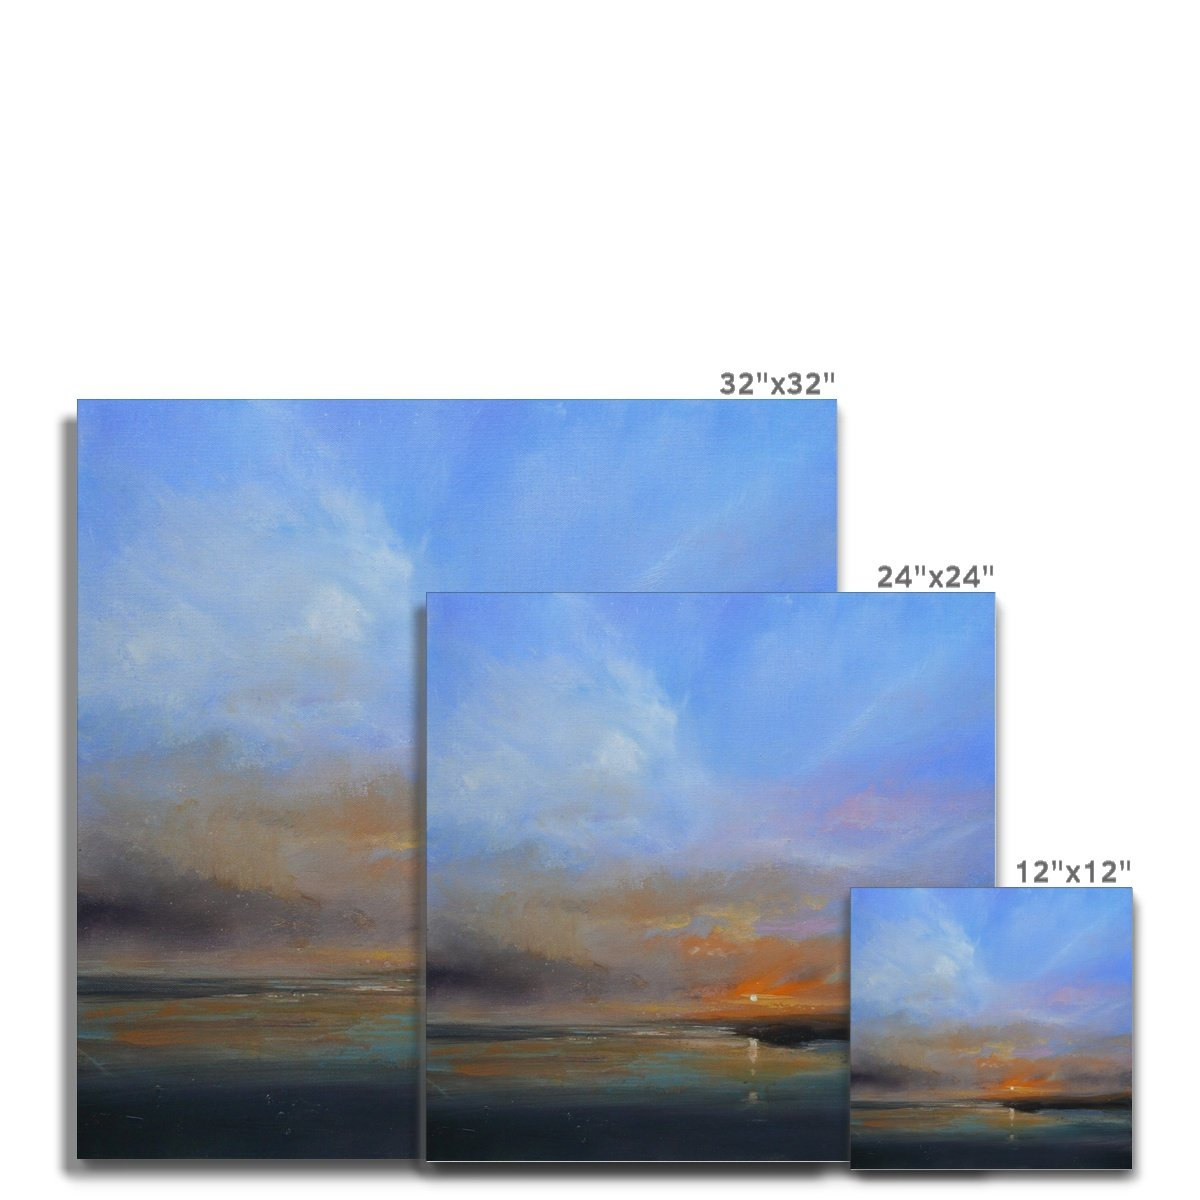 Deep Stretched Canvases (unframed)